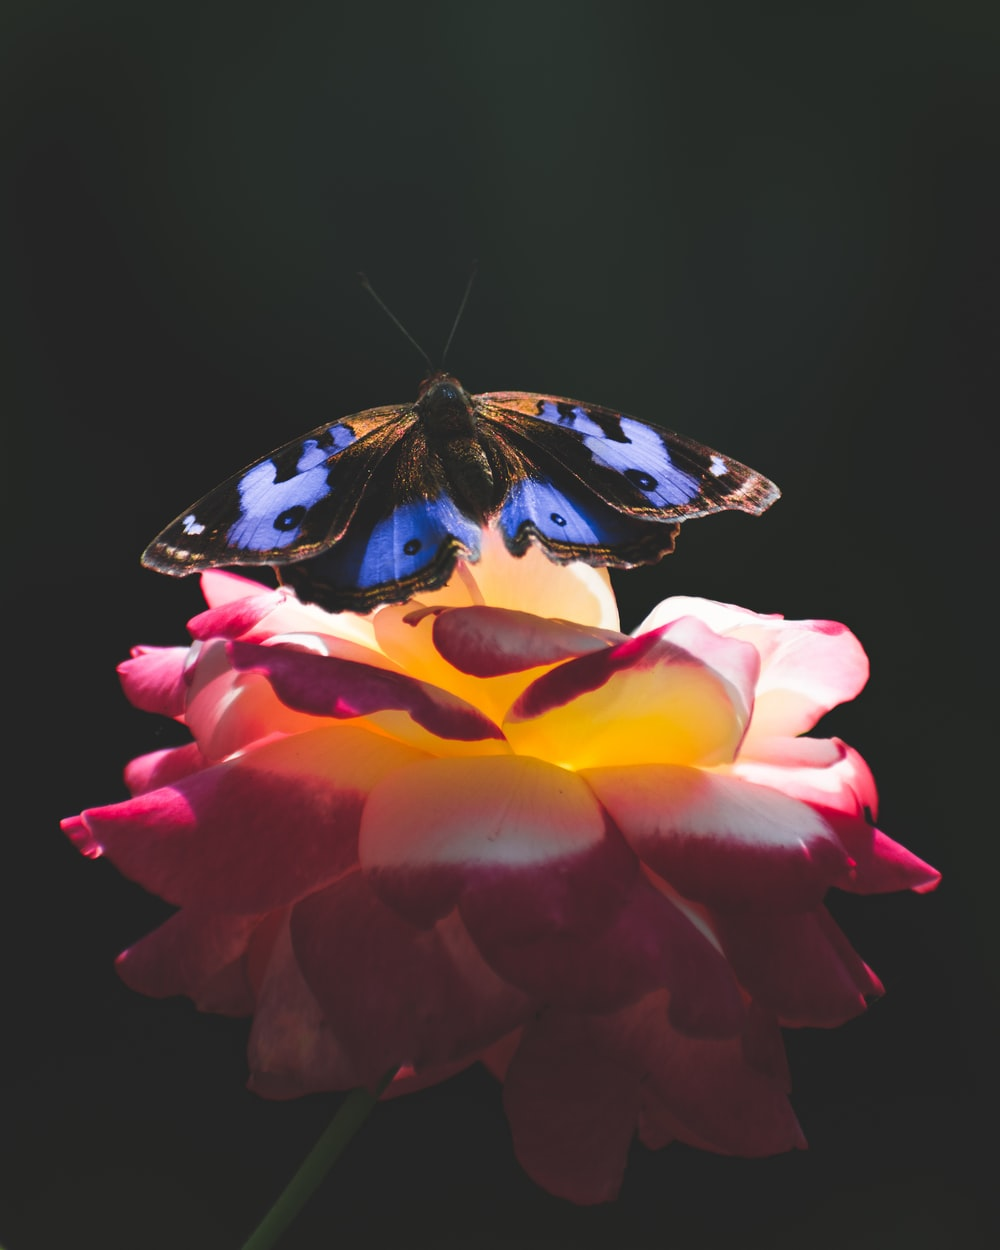 blue and black butterfly perched on flower